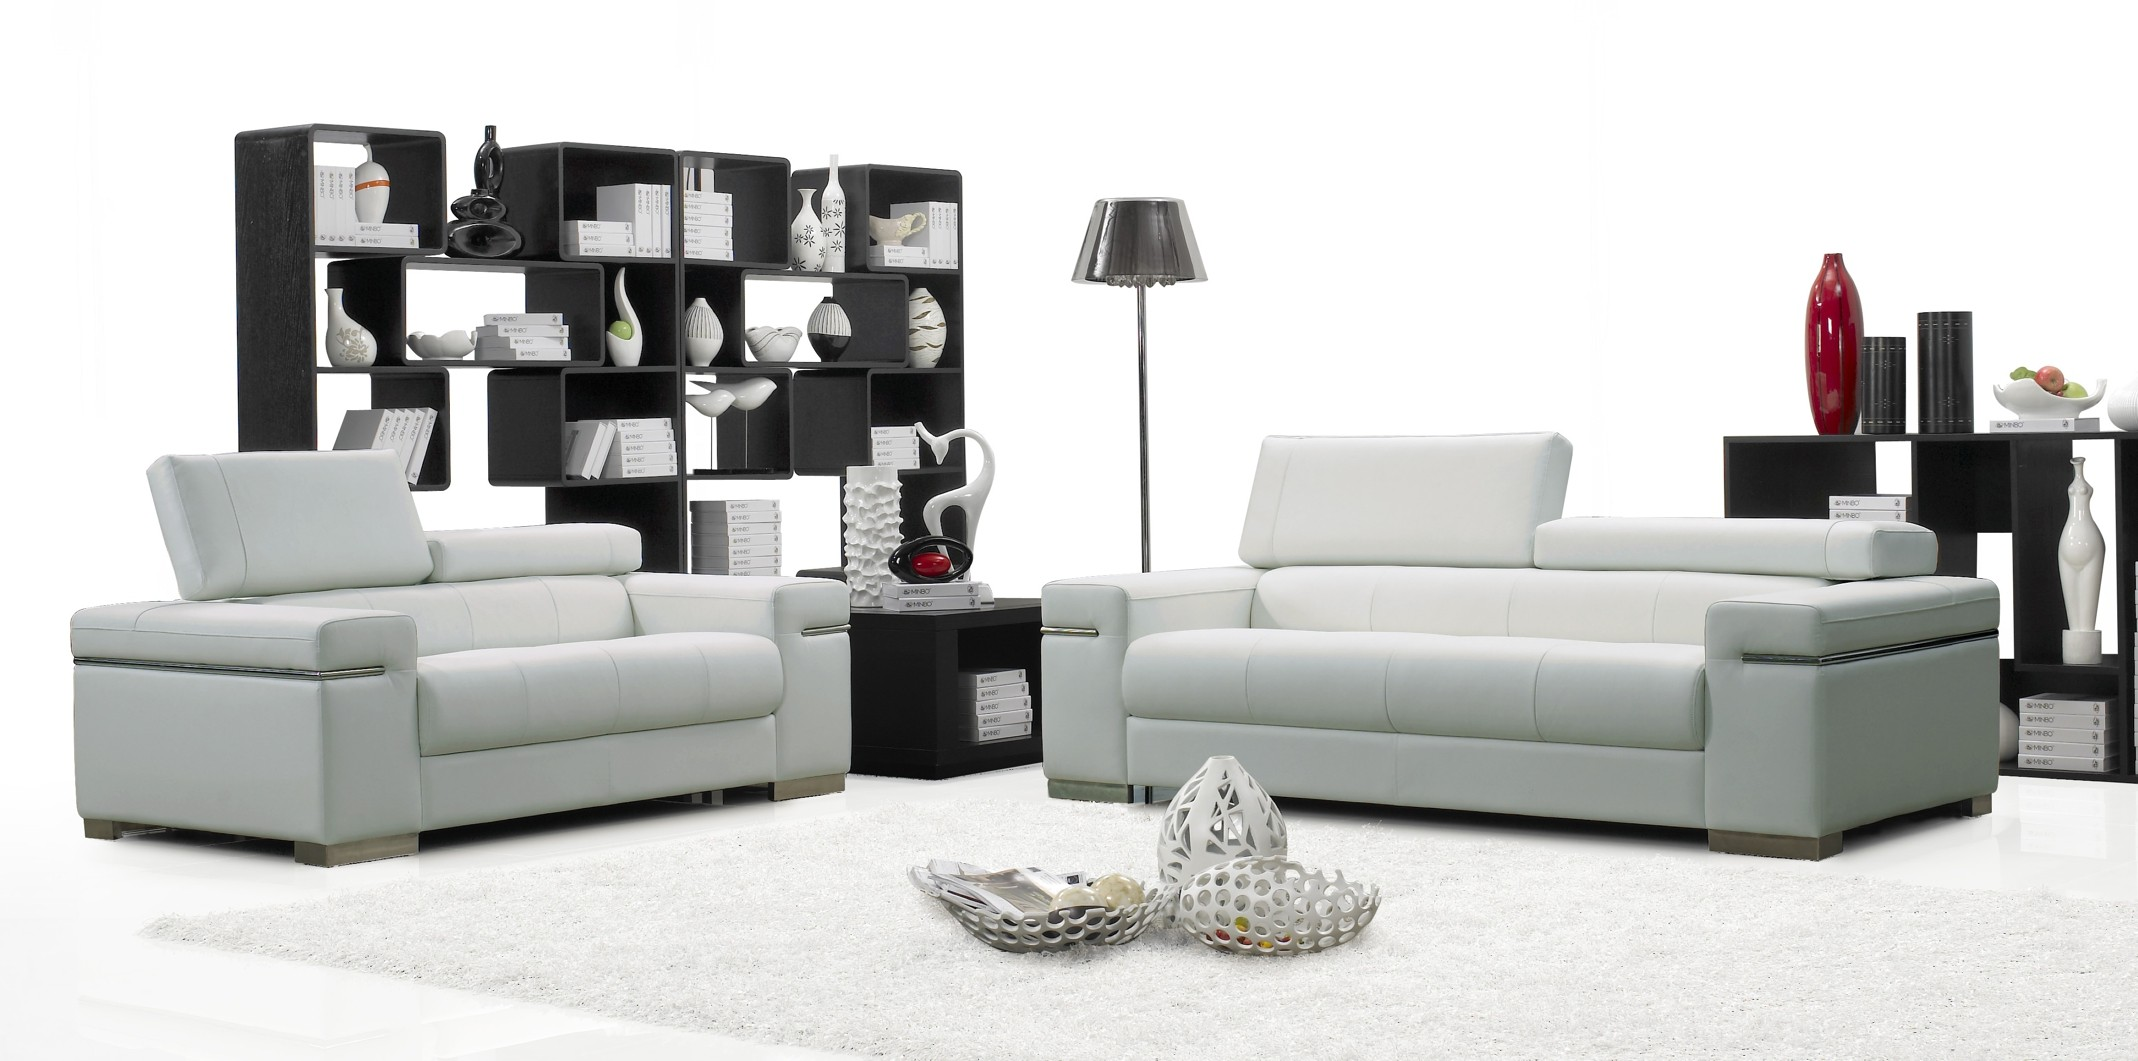 True modern furniture online homesfeed for Household furniture design